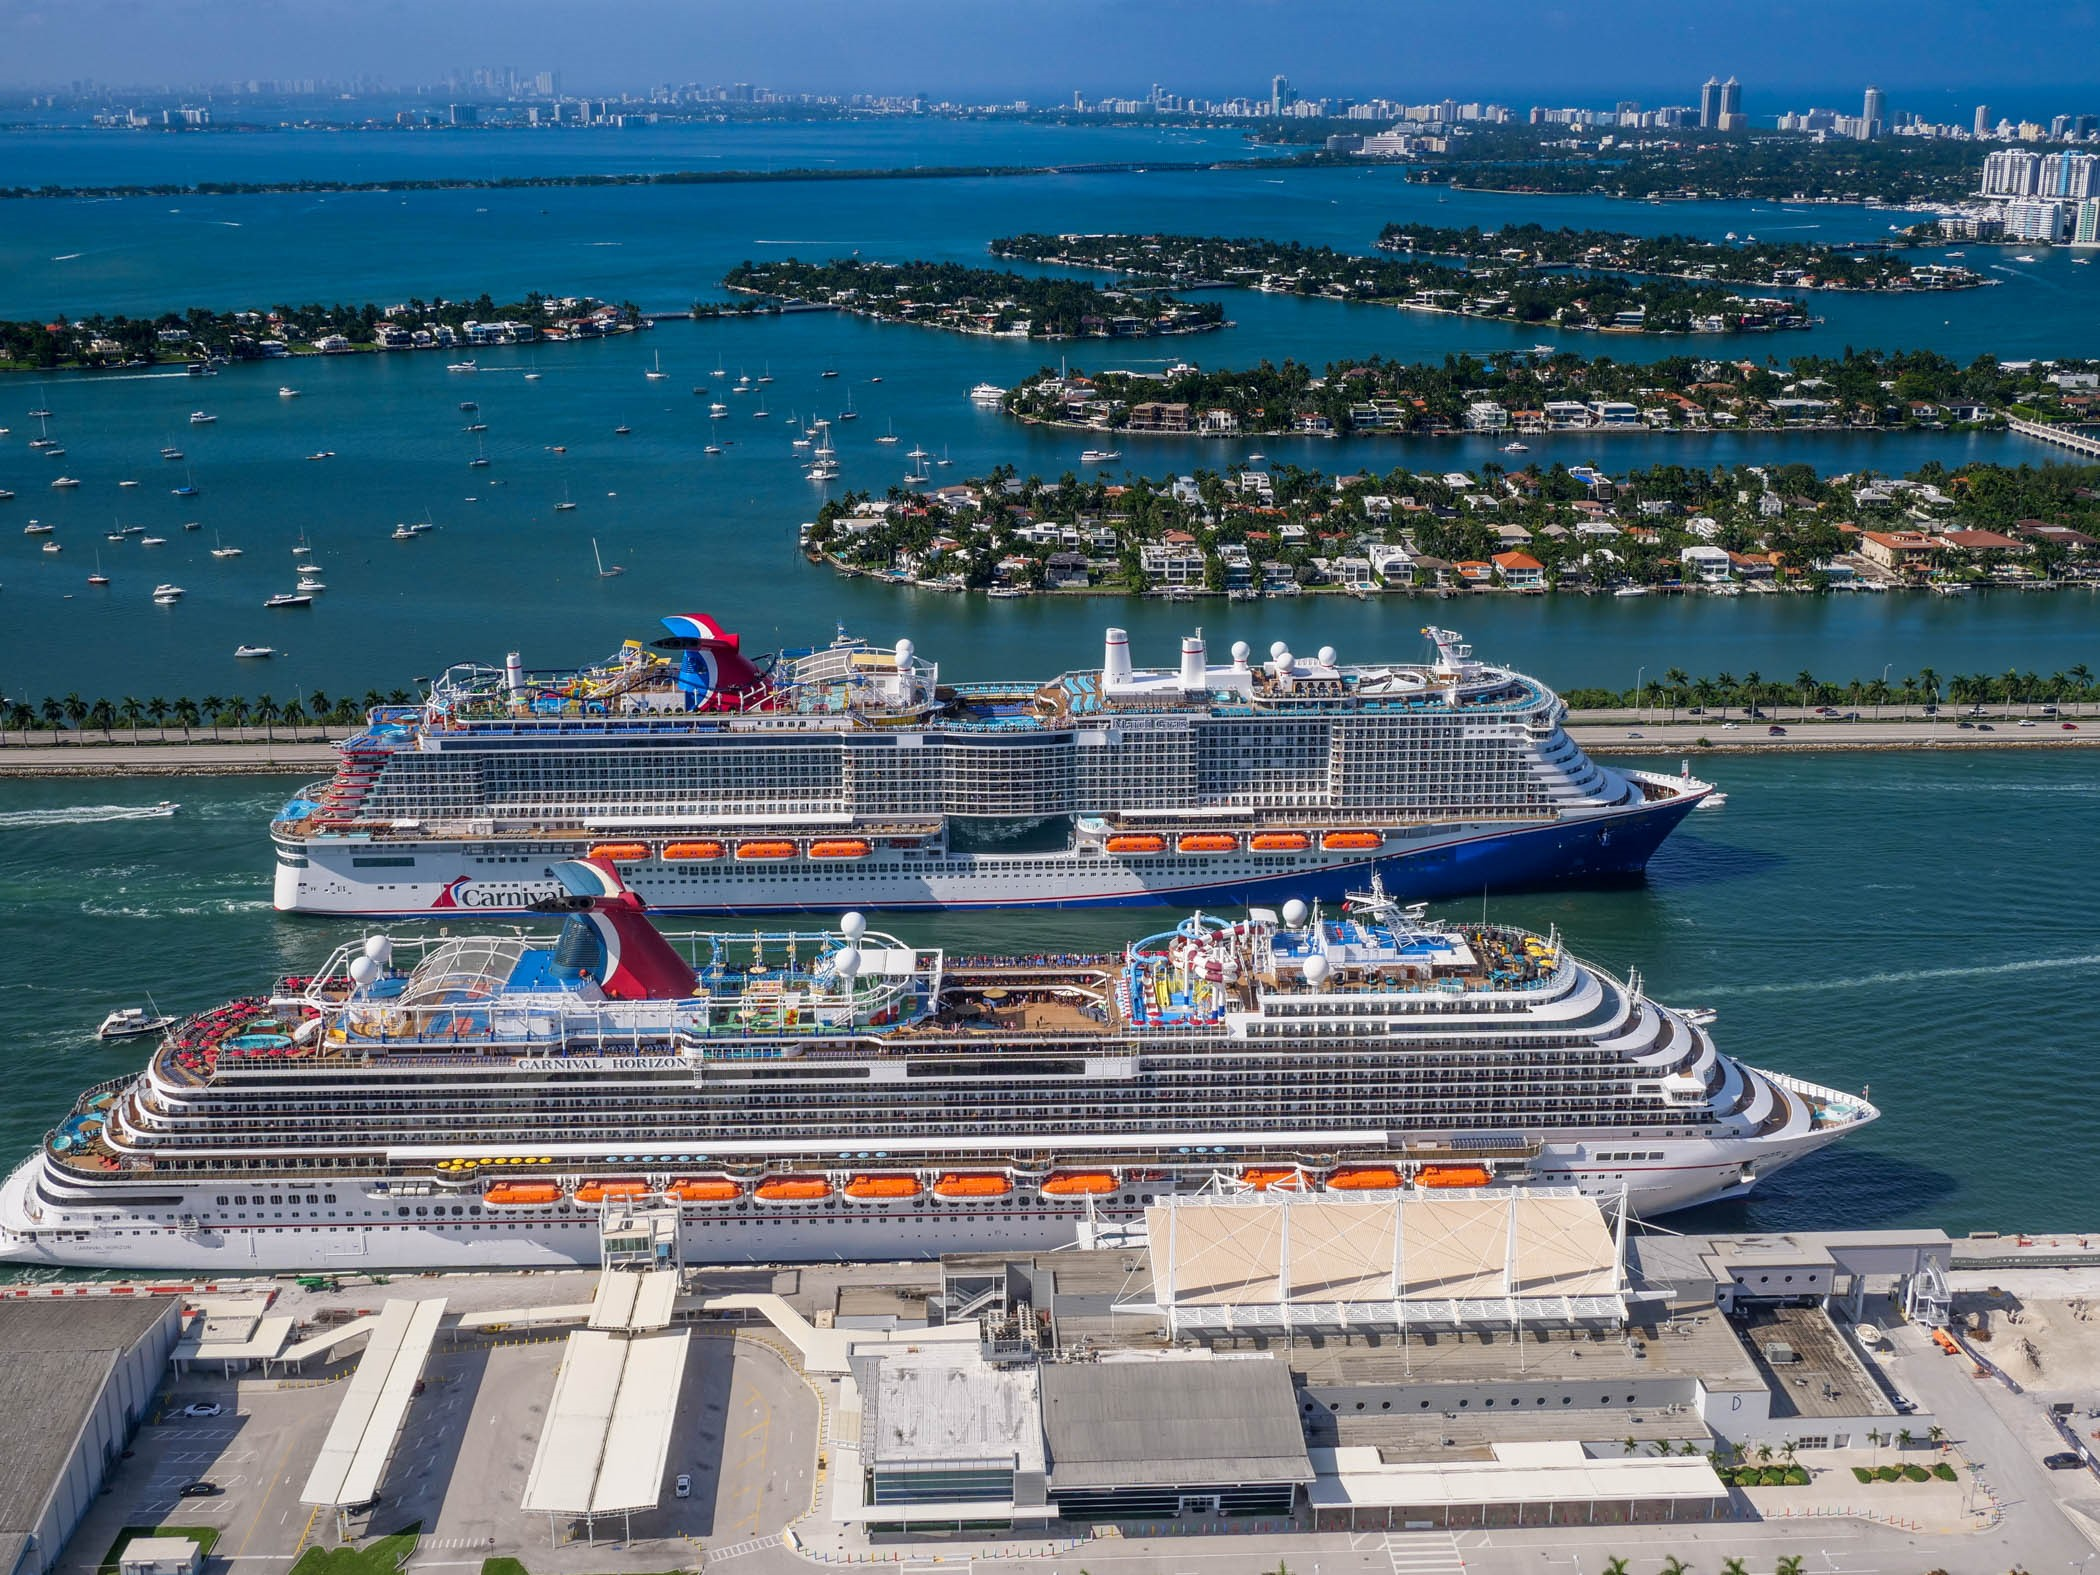 Carnival Cruise Line Resumes Operations from PortMiami This Afternoon, Carnival Horizon Joined By Mardi Gras for a Special Sailaway Moment